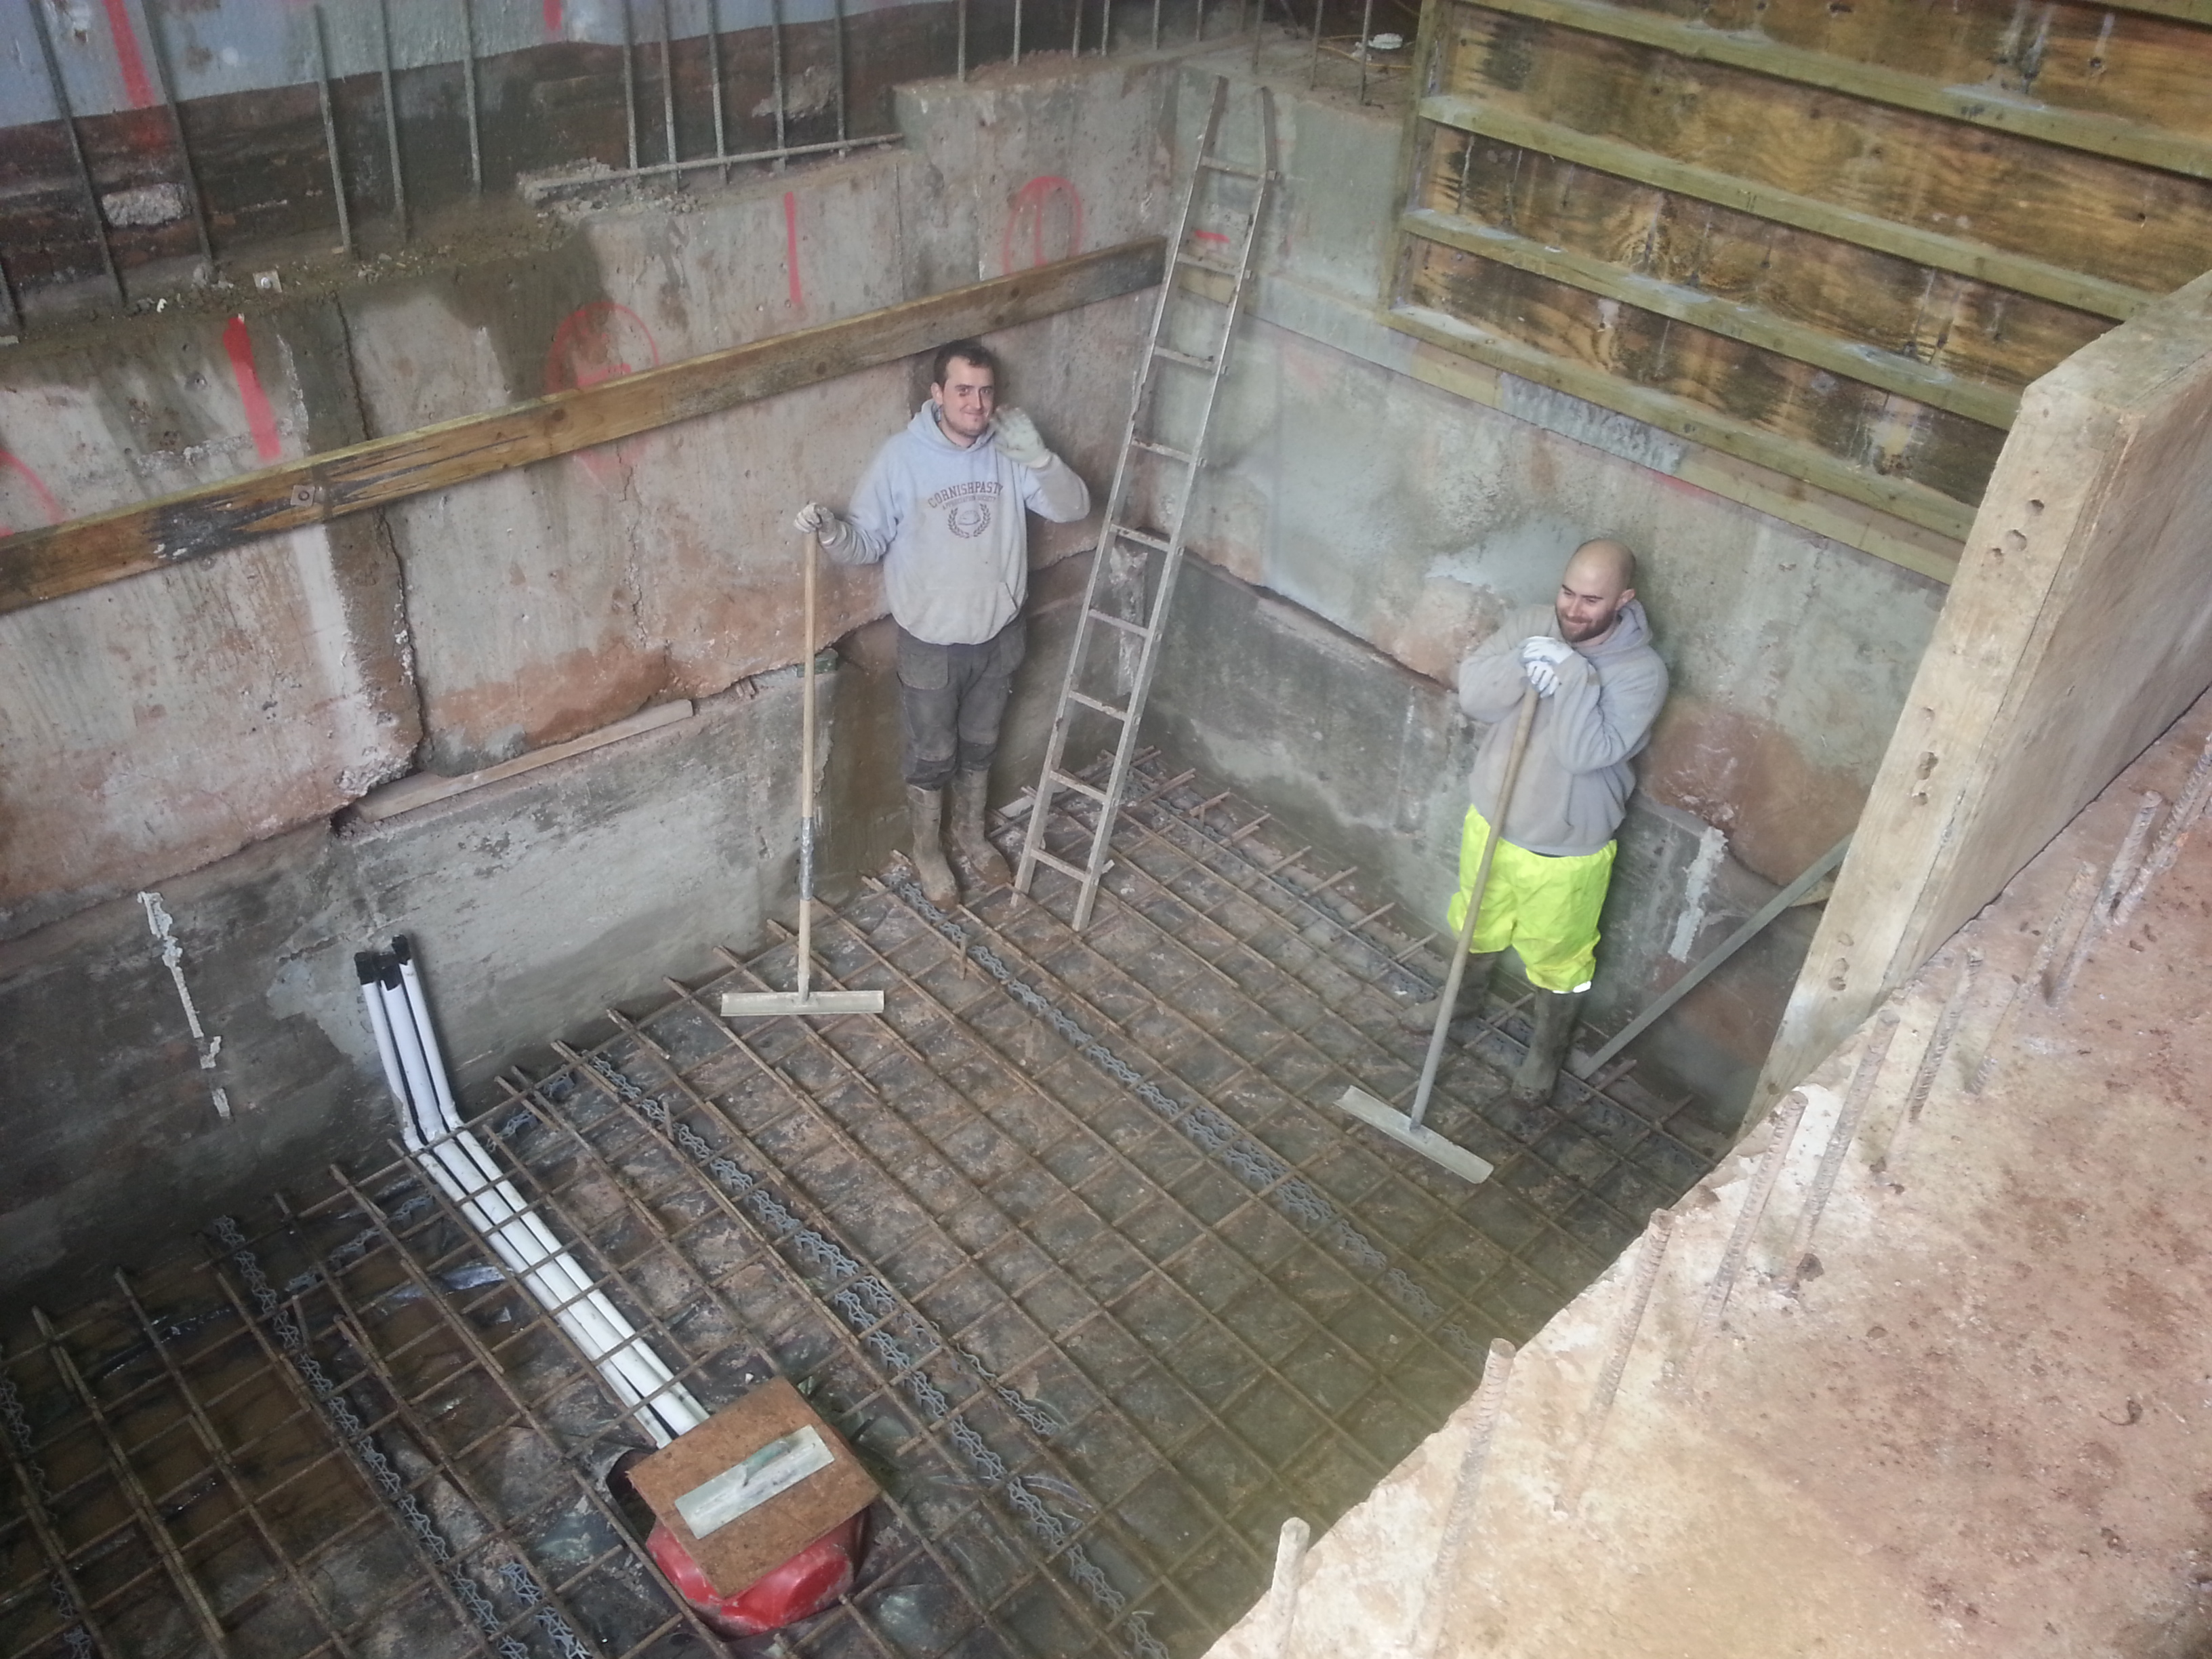 Ground water sump located centrally